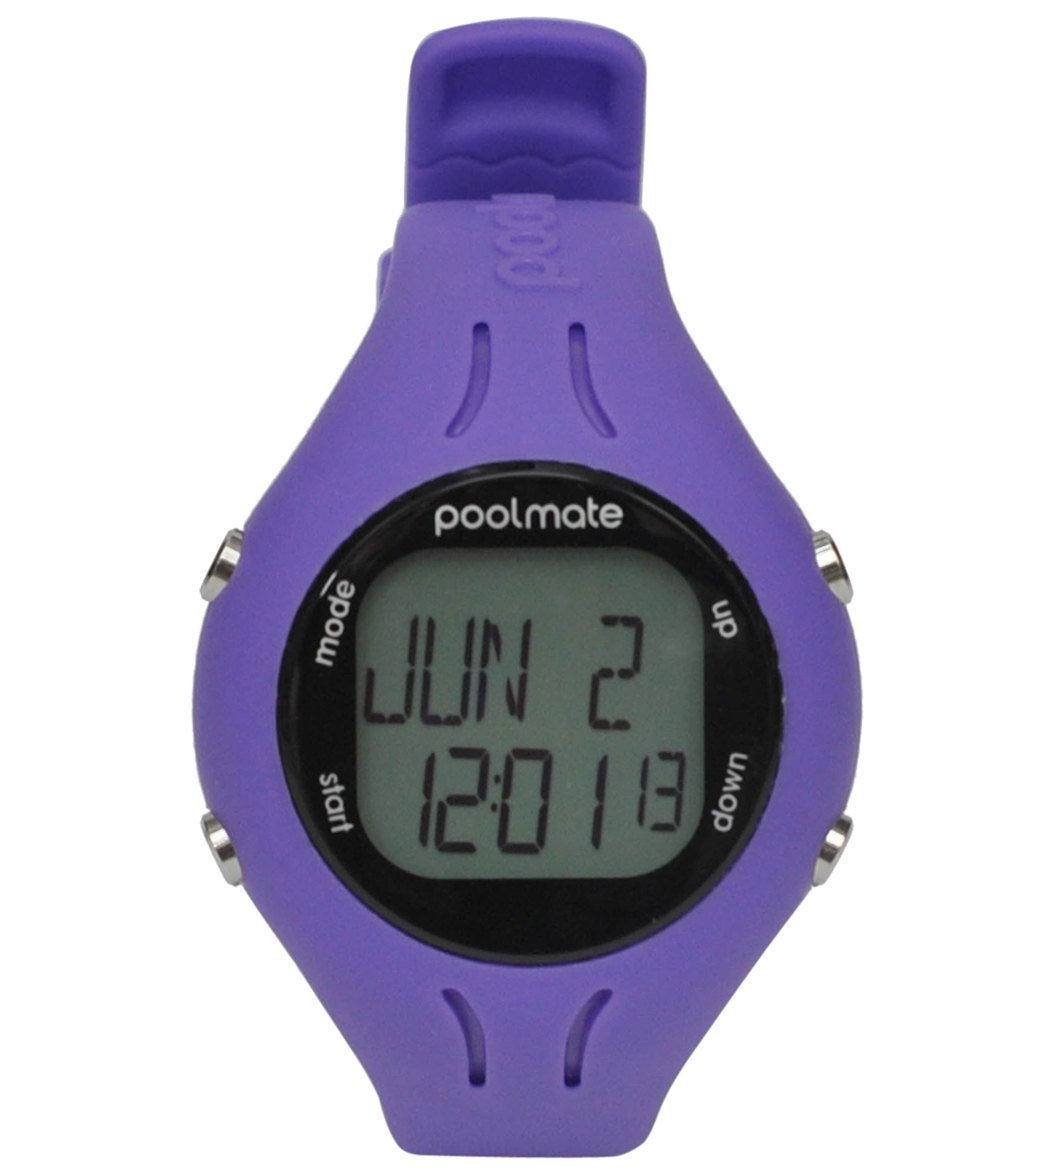 Swimovate PoolMate2 Swim Sports Watch Review